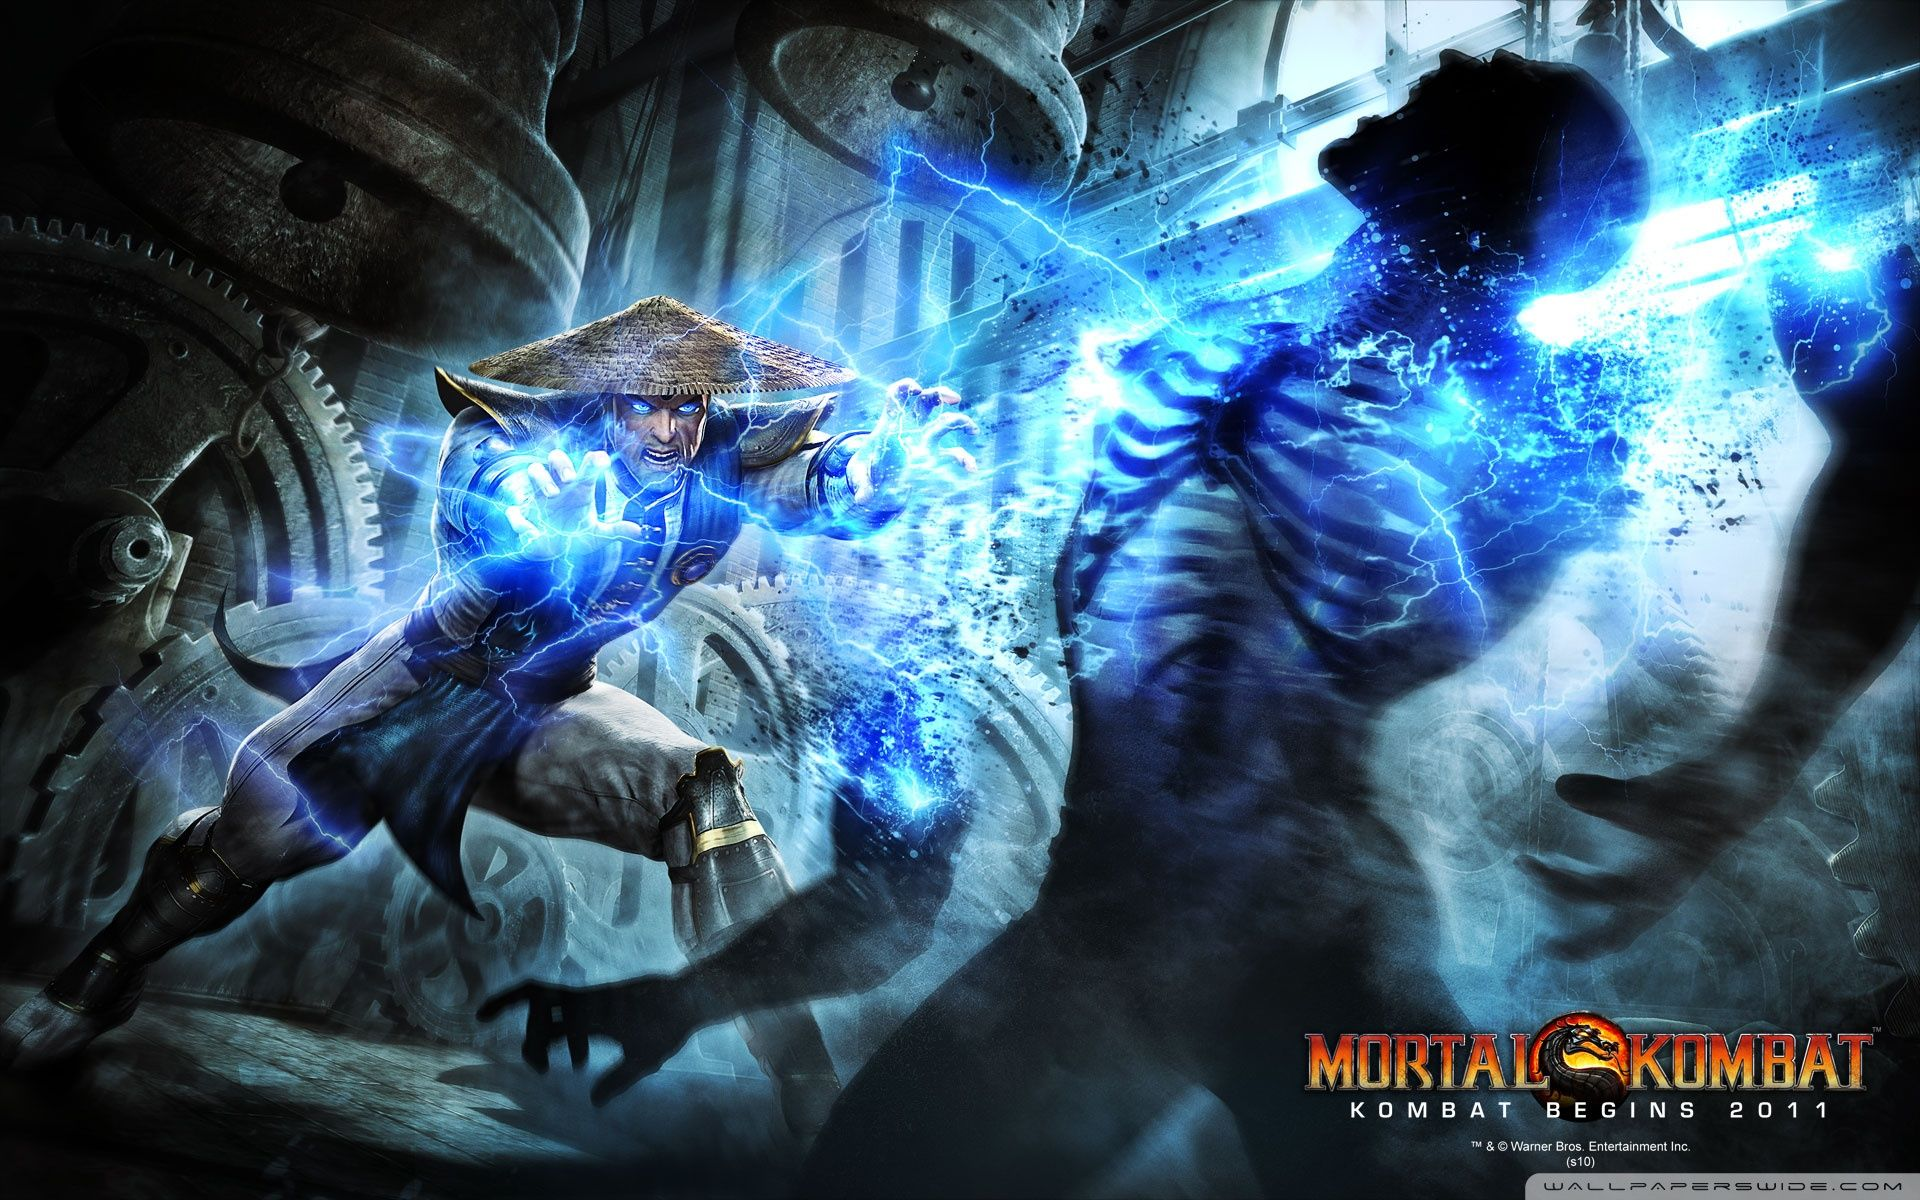 Mortal Kombat Raiden Wallpapers - Top Free Mortal Kombat Raiden ... bd231c23d38f